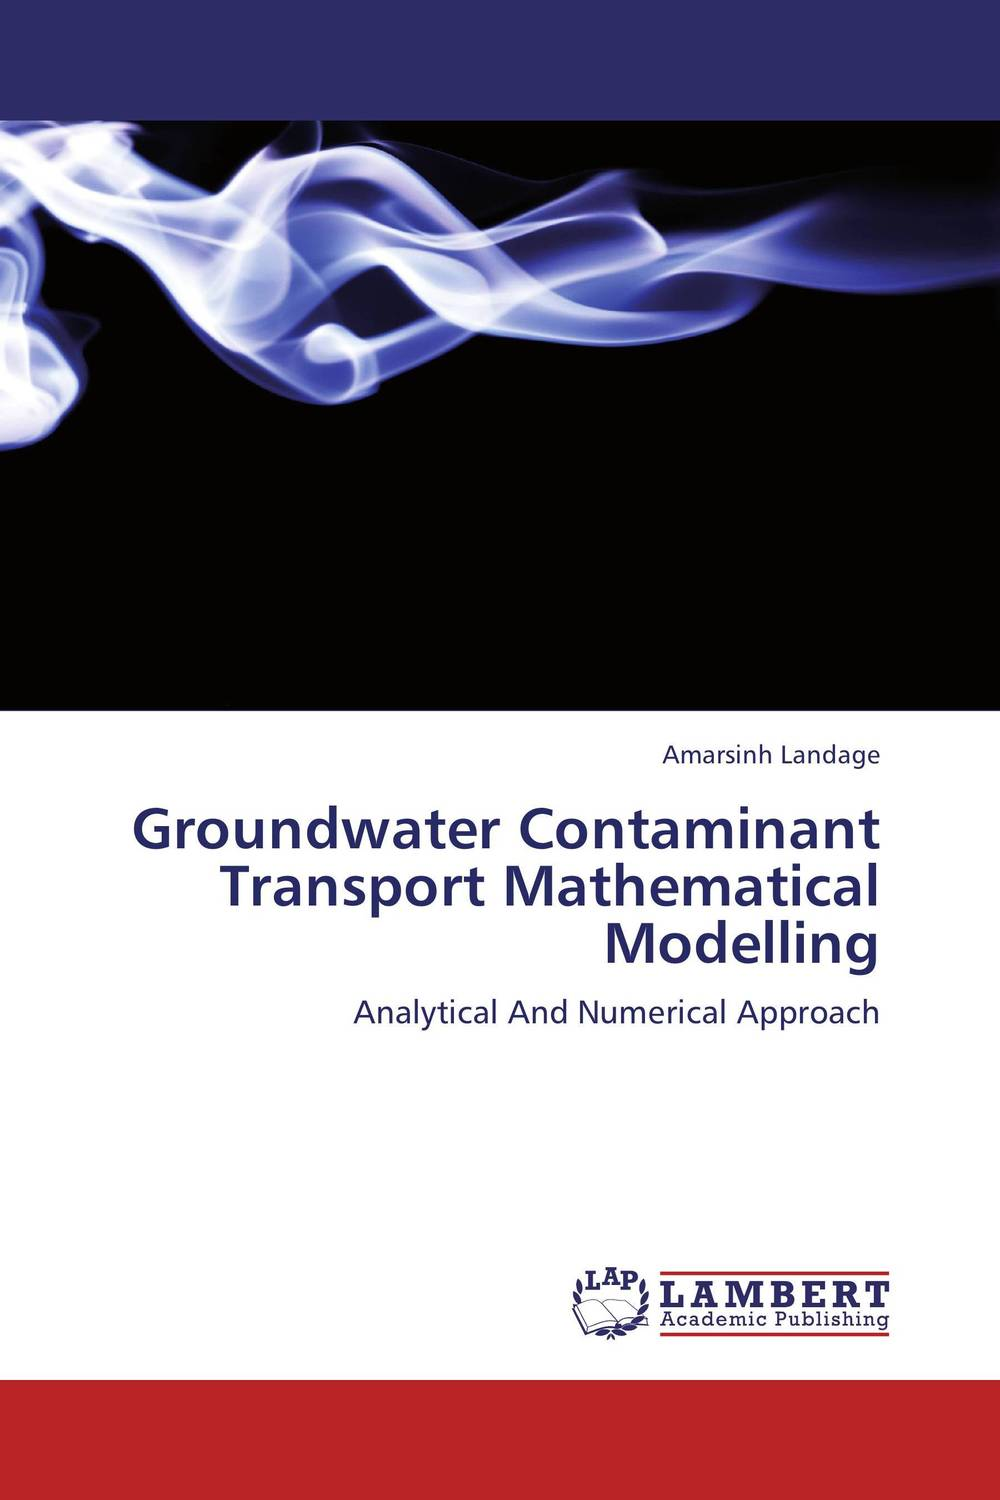 Groundwater Contaminant Transport Mathematical Modelling